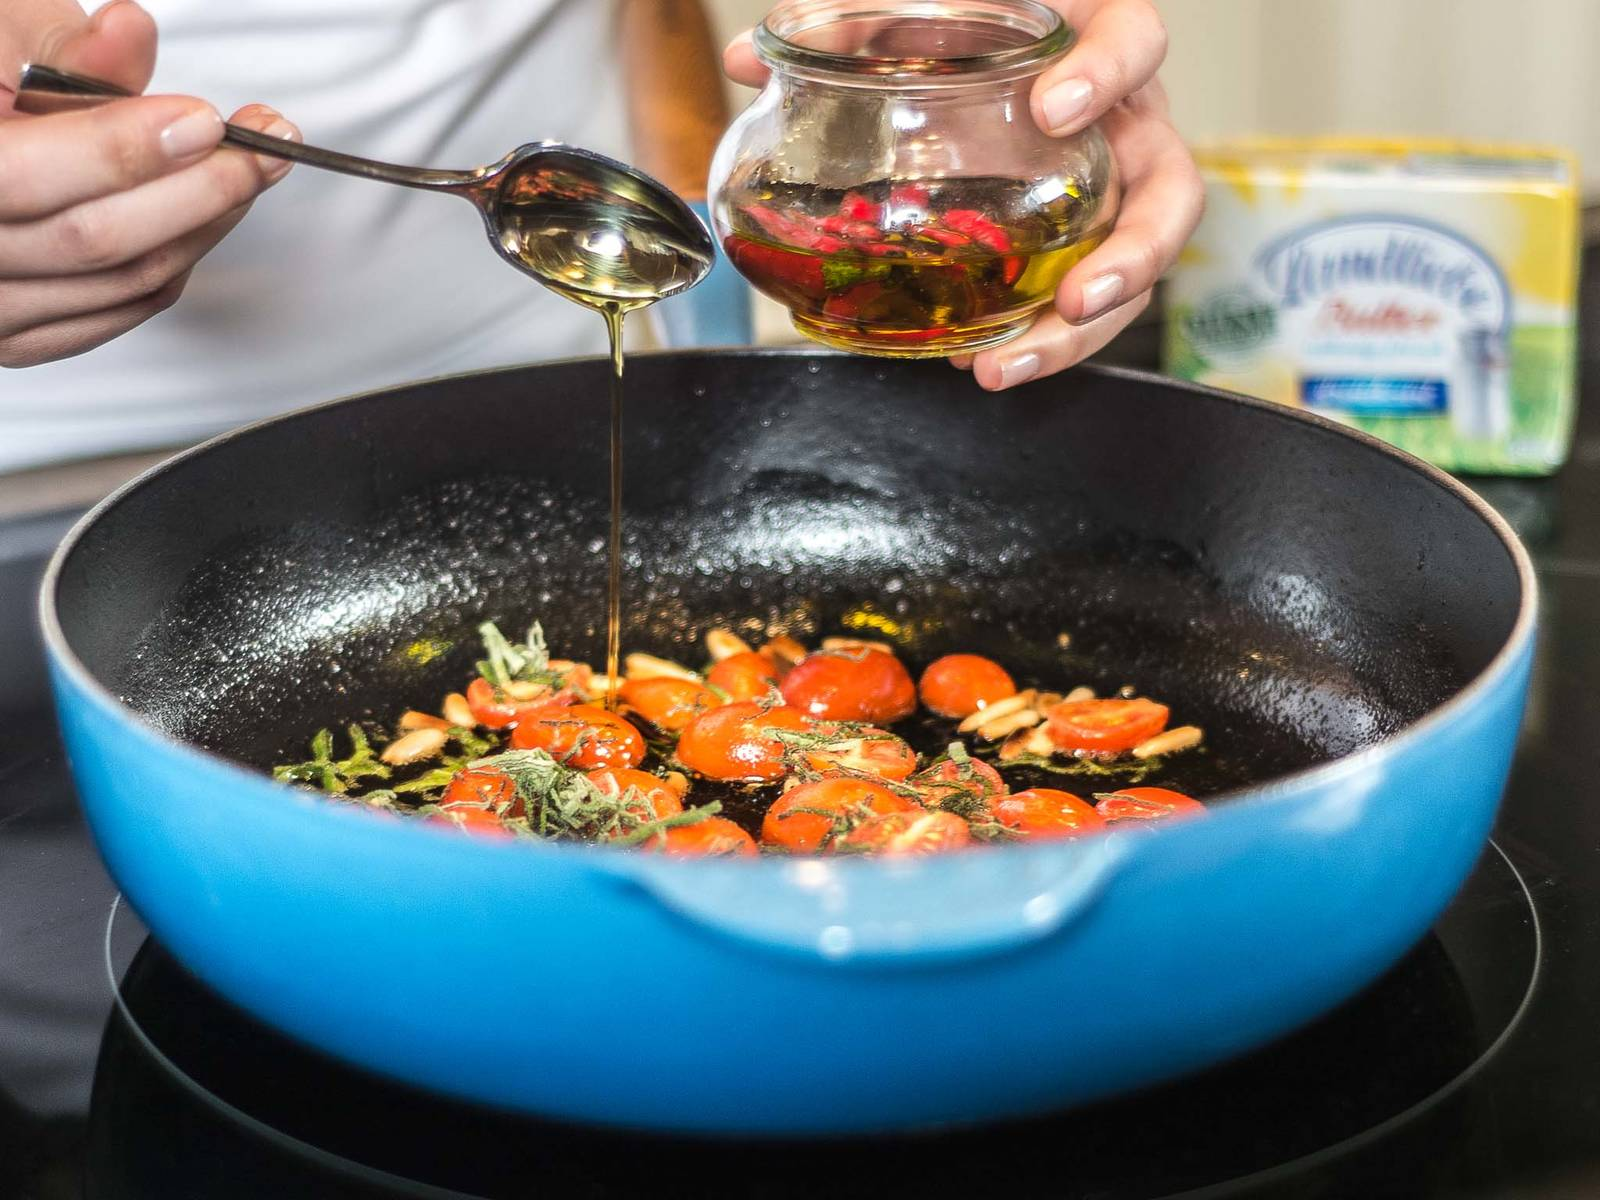 Melt butter in a large frying pan. Add sage, cherry tomatoes, pine nuts, and chili oil and fry. Season lightly with salt and pepper.